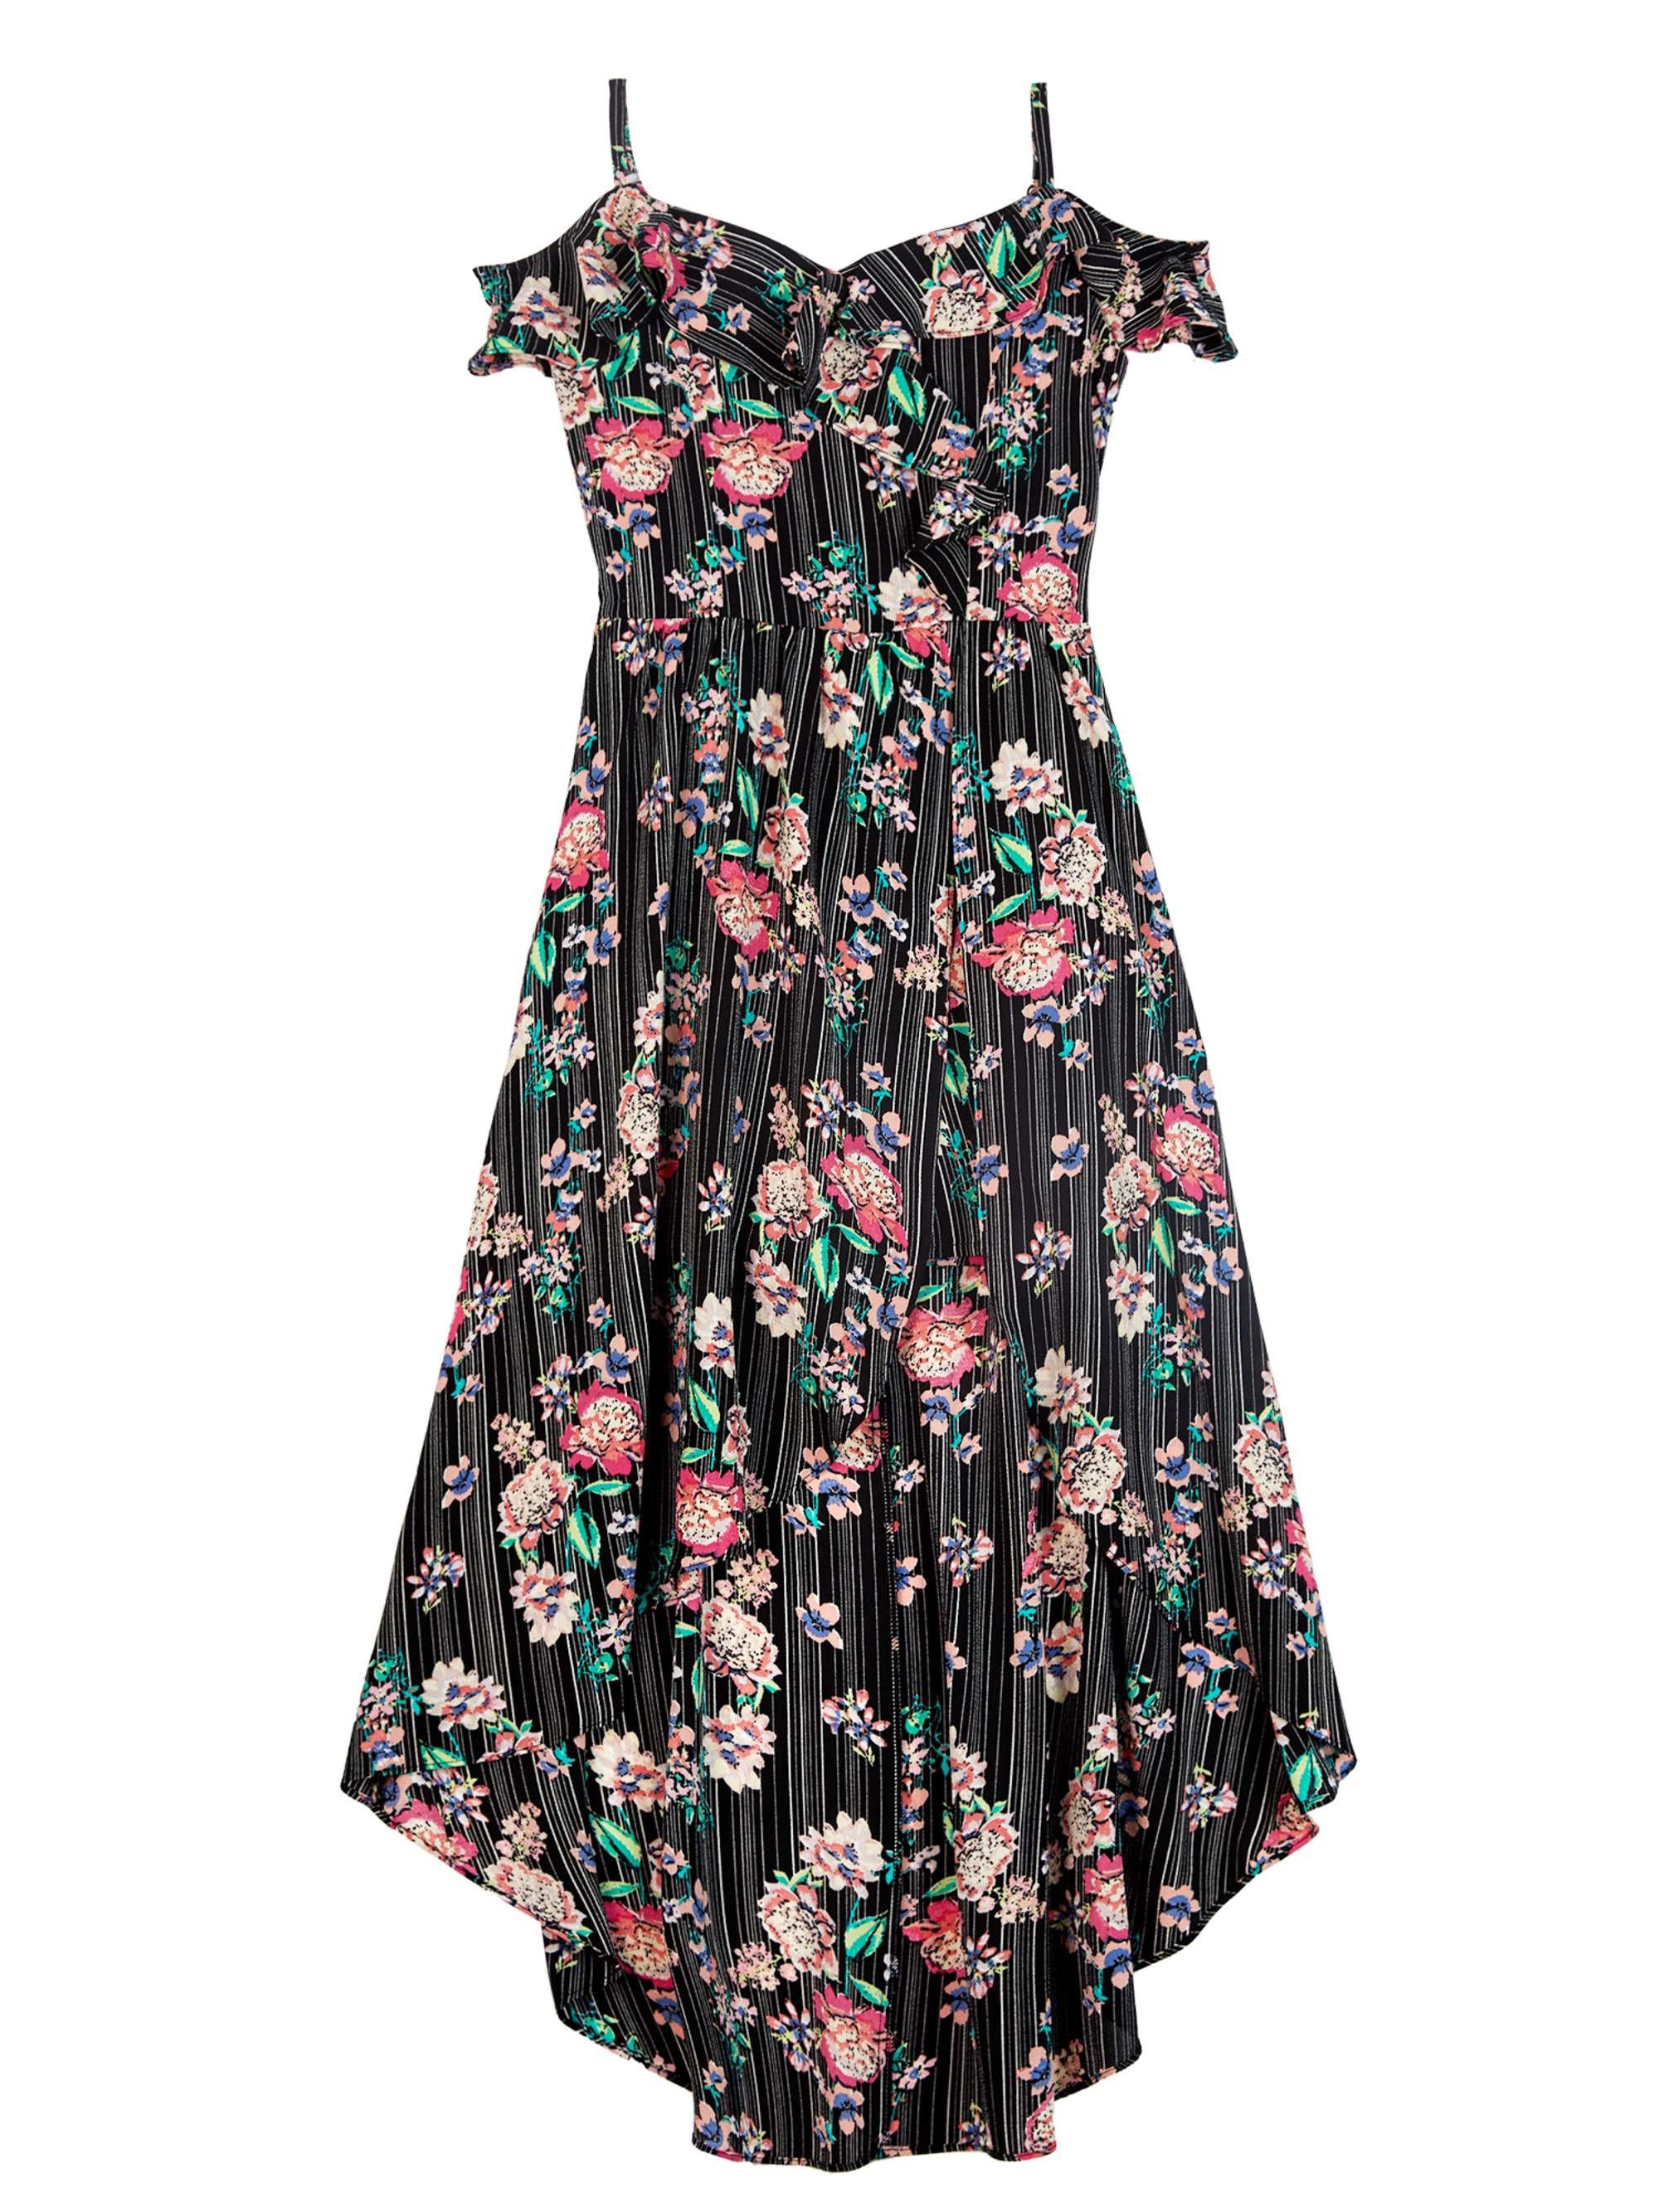 Floral Asymmetrical Cold Shoulder Walk-Thru Maxi Dress with Necklace (Big Girls)